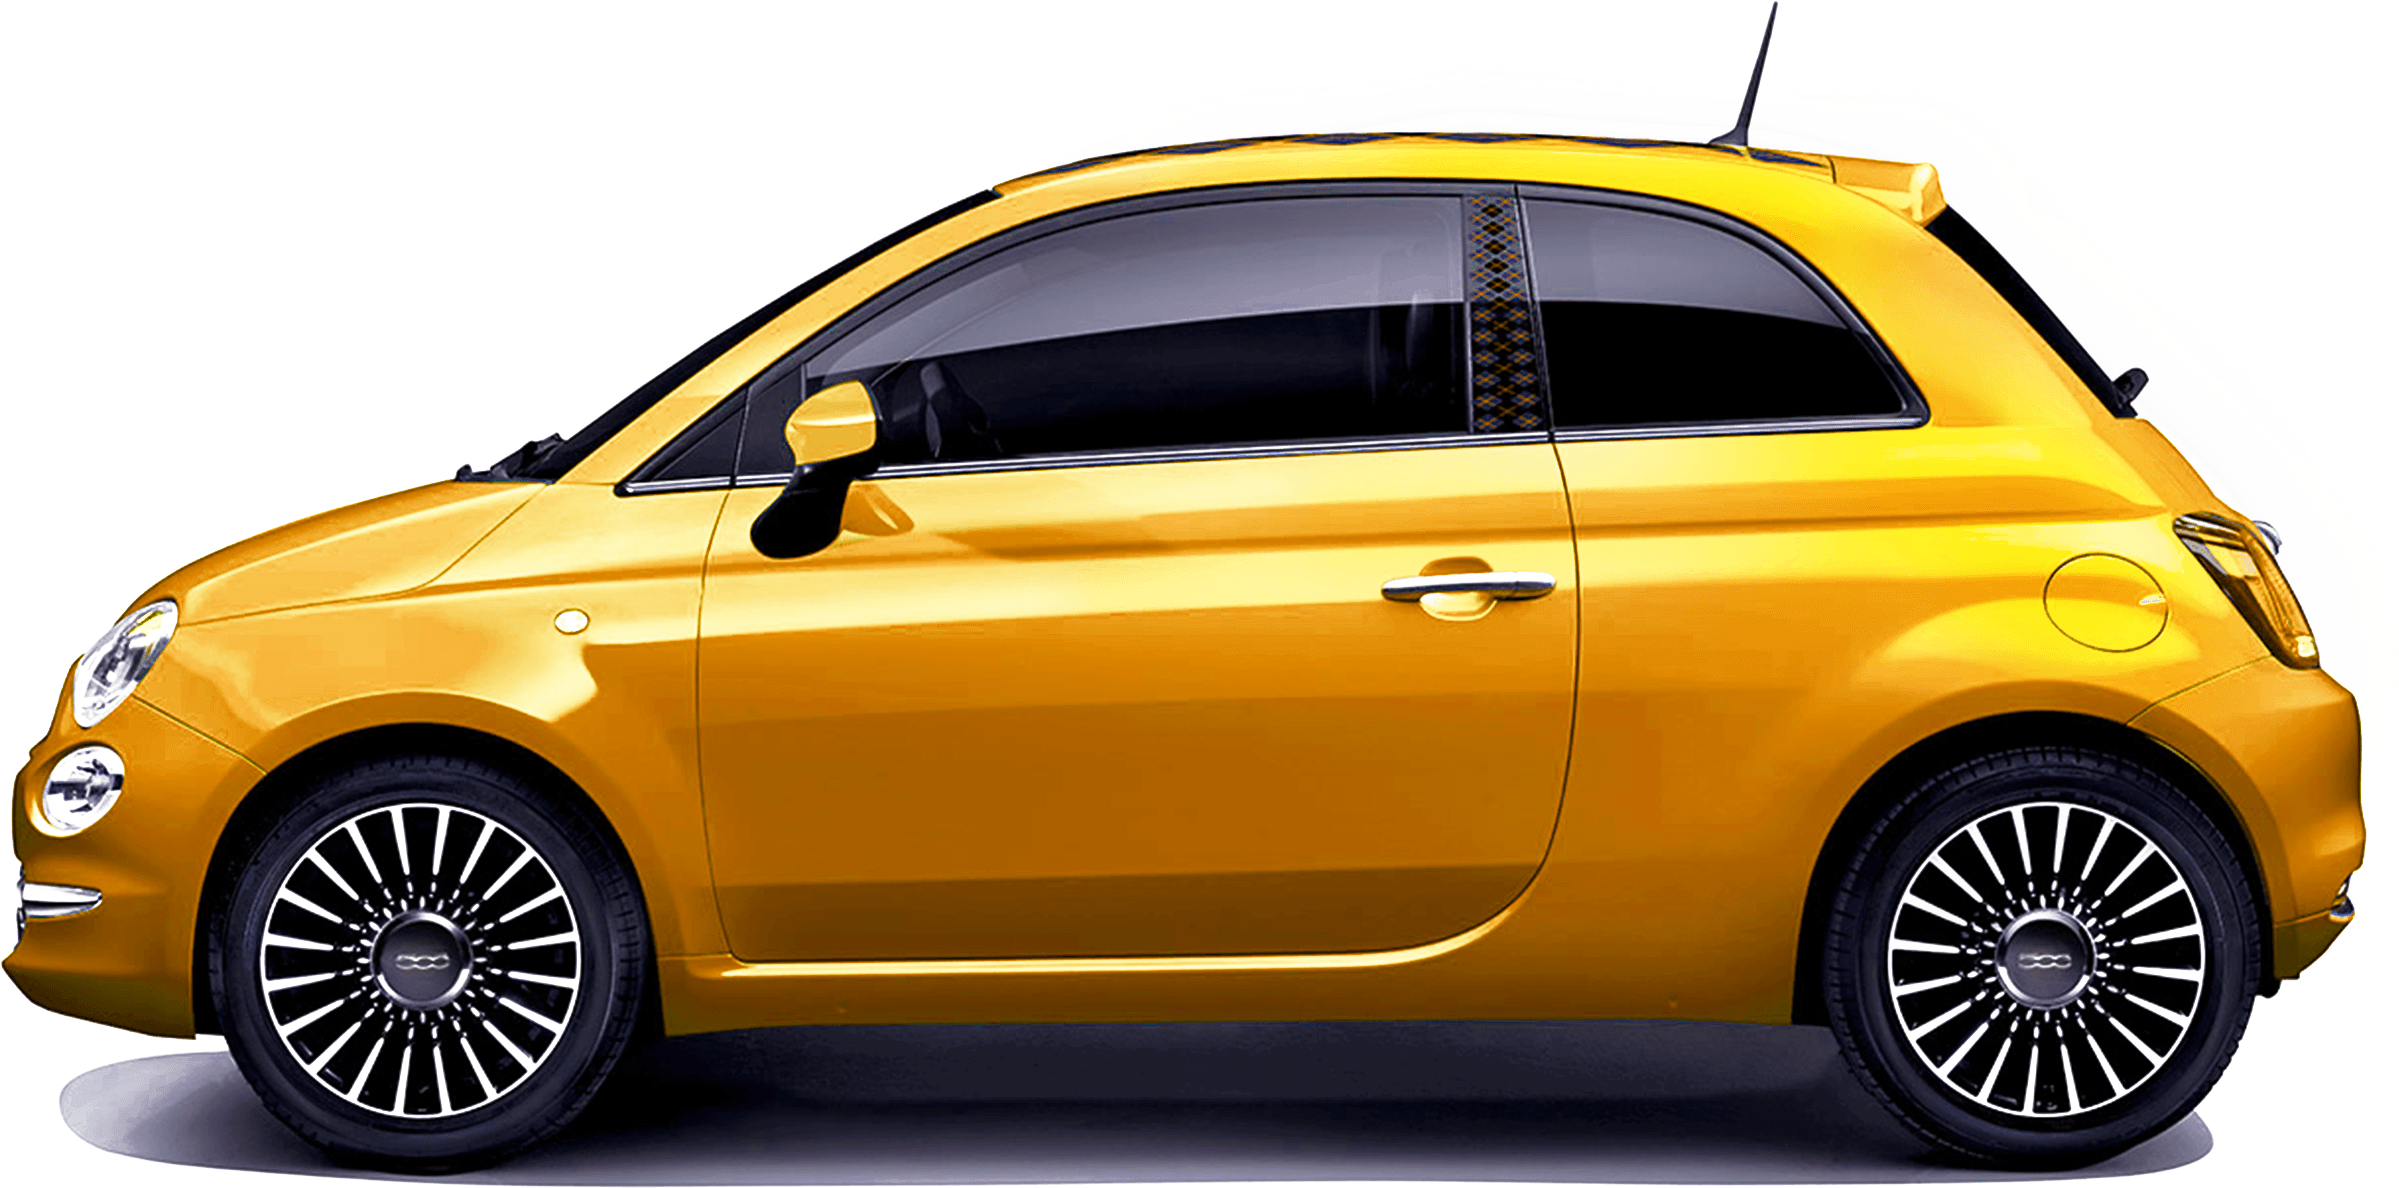 Average Price To Rent A Car In Florida